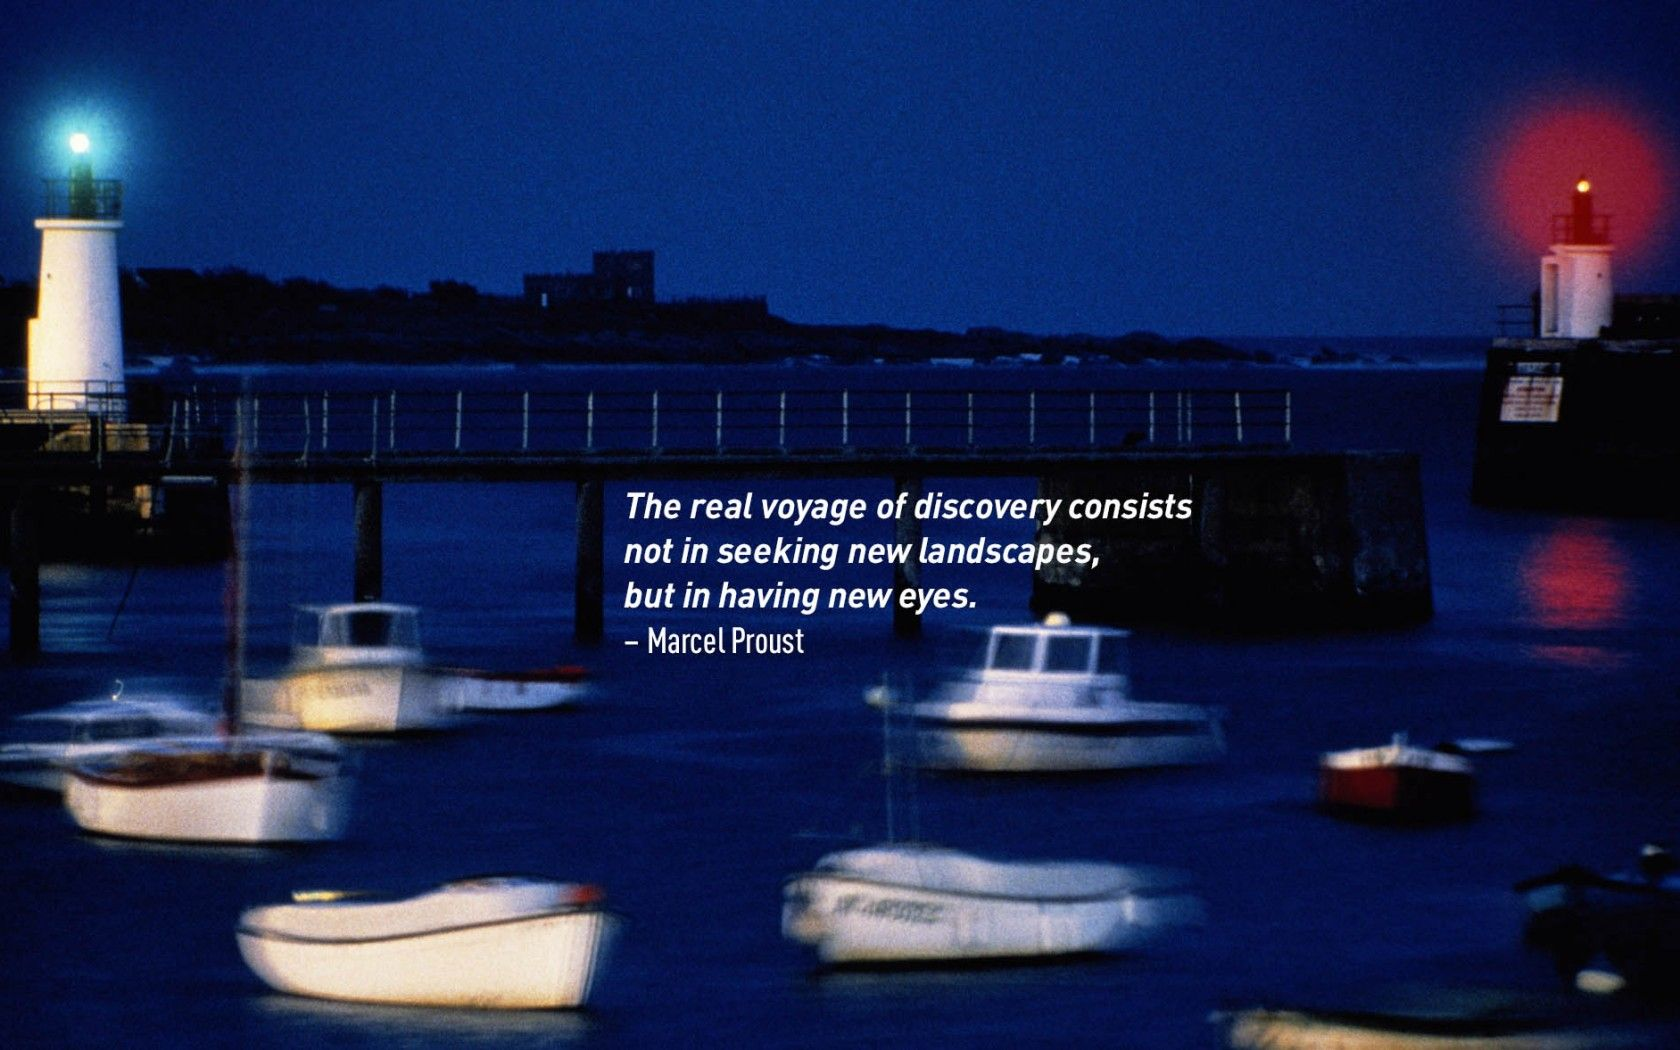 Motivational Discovery Quotes By Marcel Proust: Marcel Proust #Eyes, #Landscapes